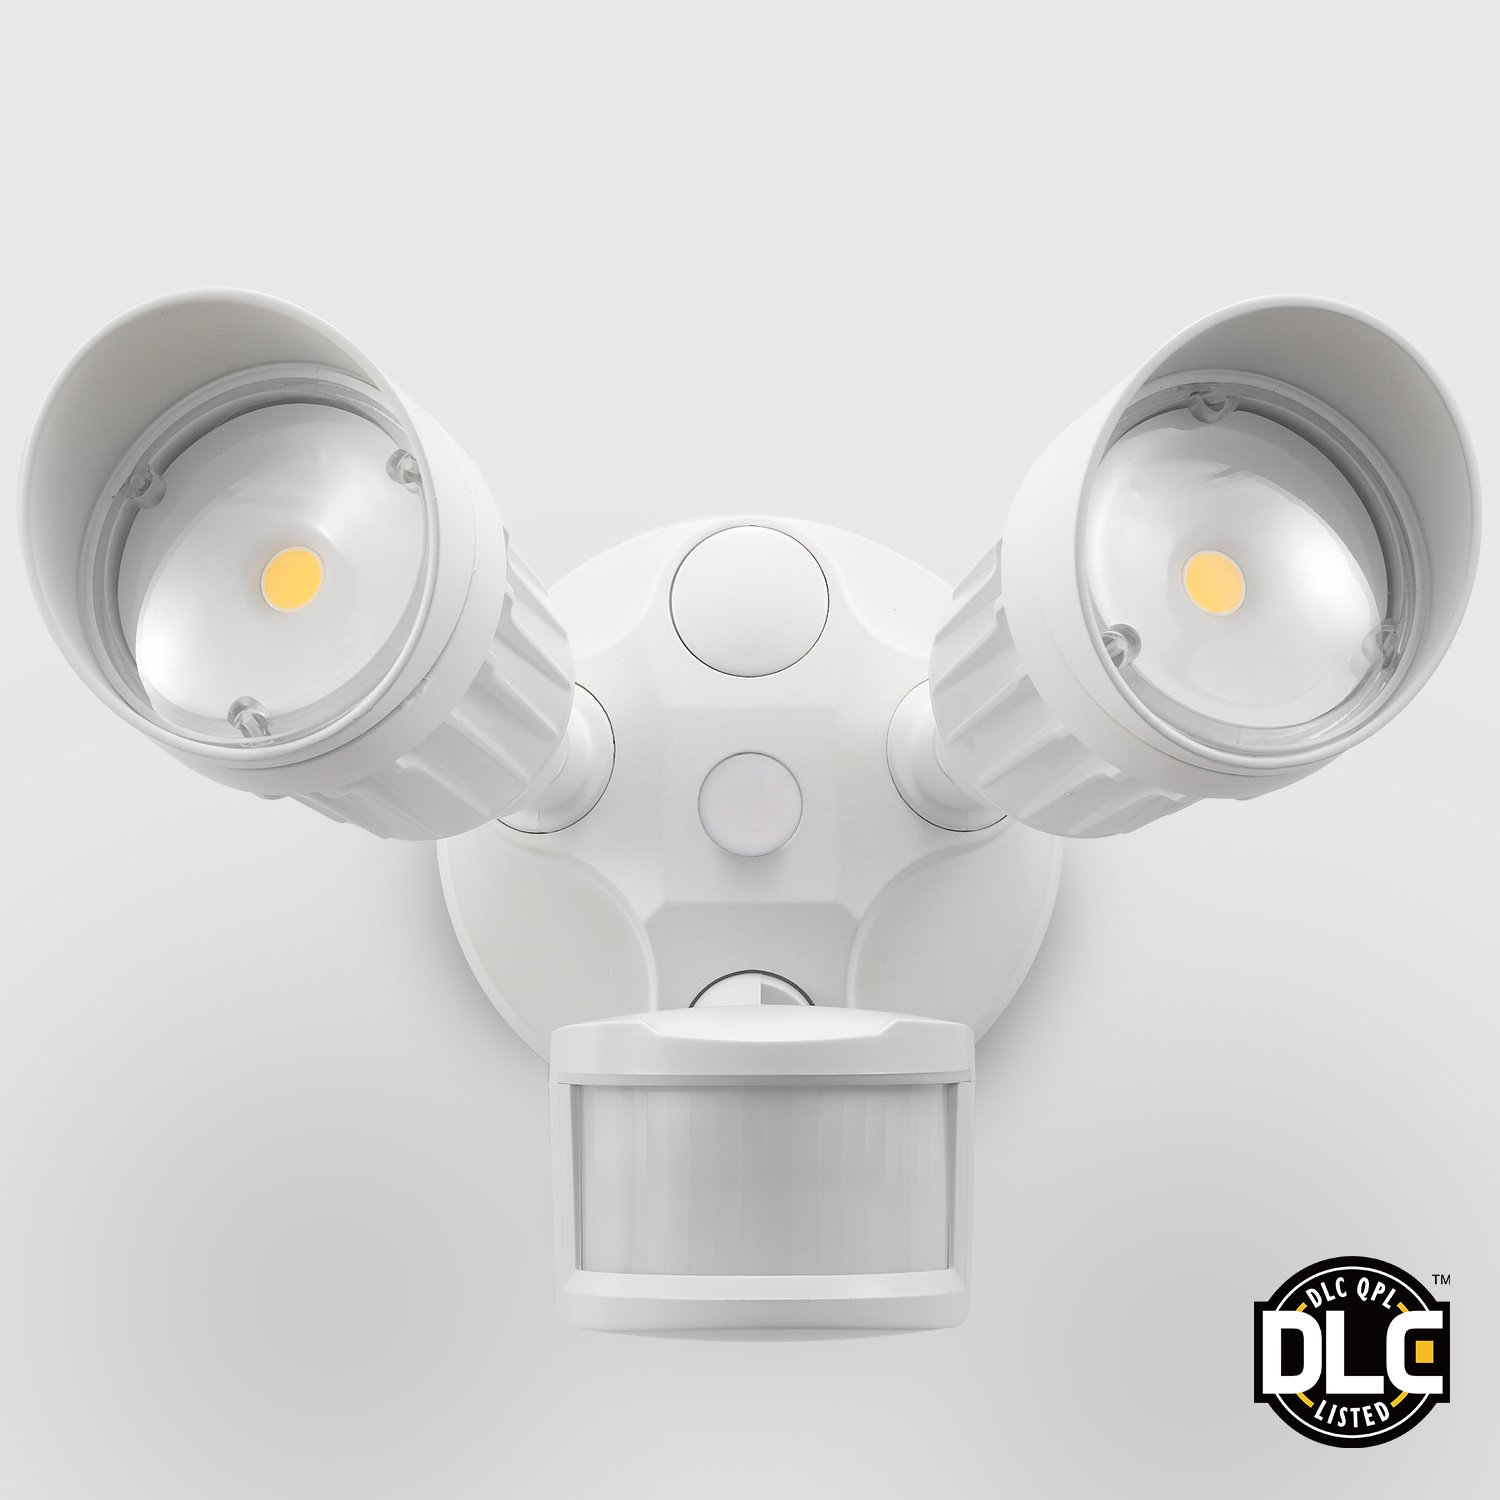 20w dual head motion activated led outdoor security light photo sensor 3 ebay for Exterior light with motion sensor